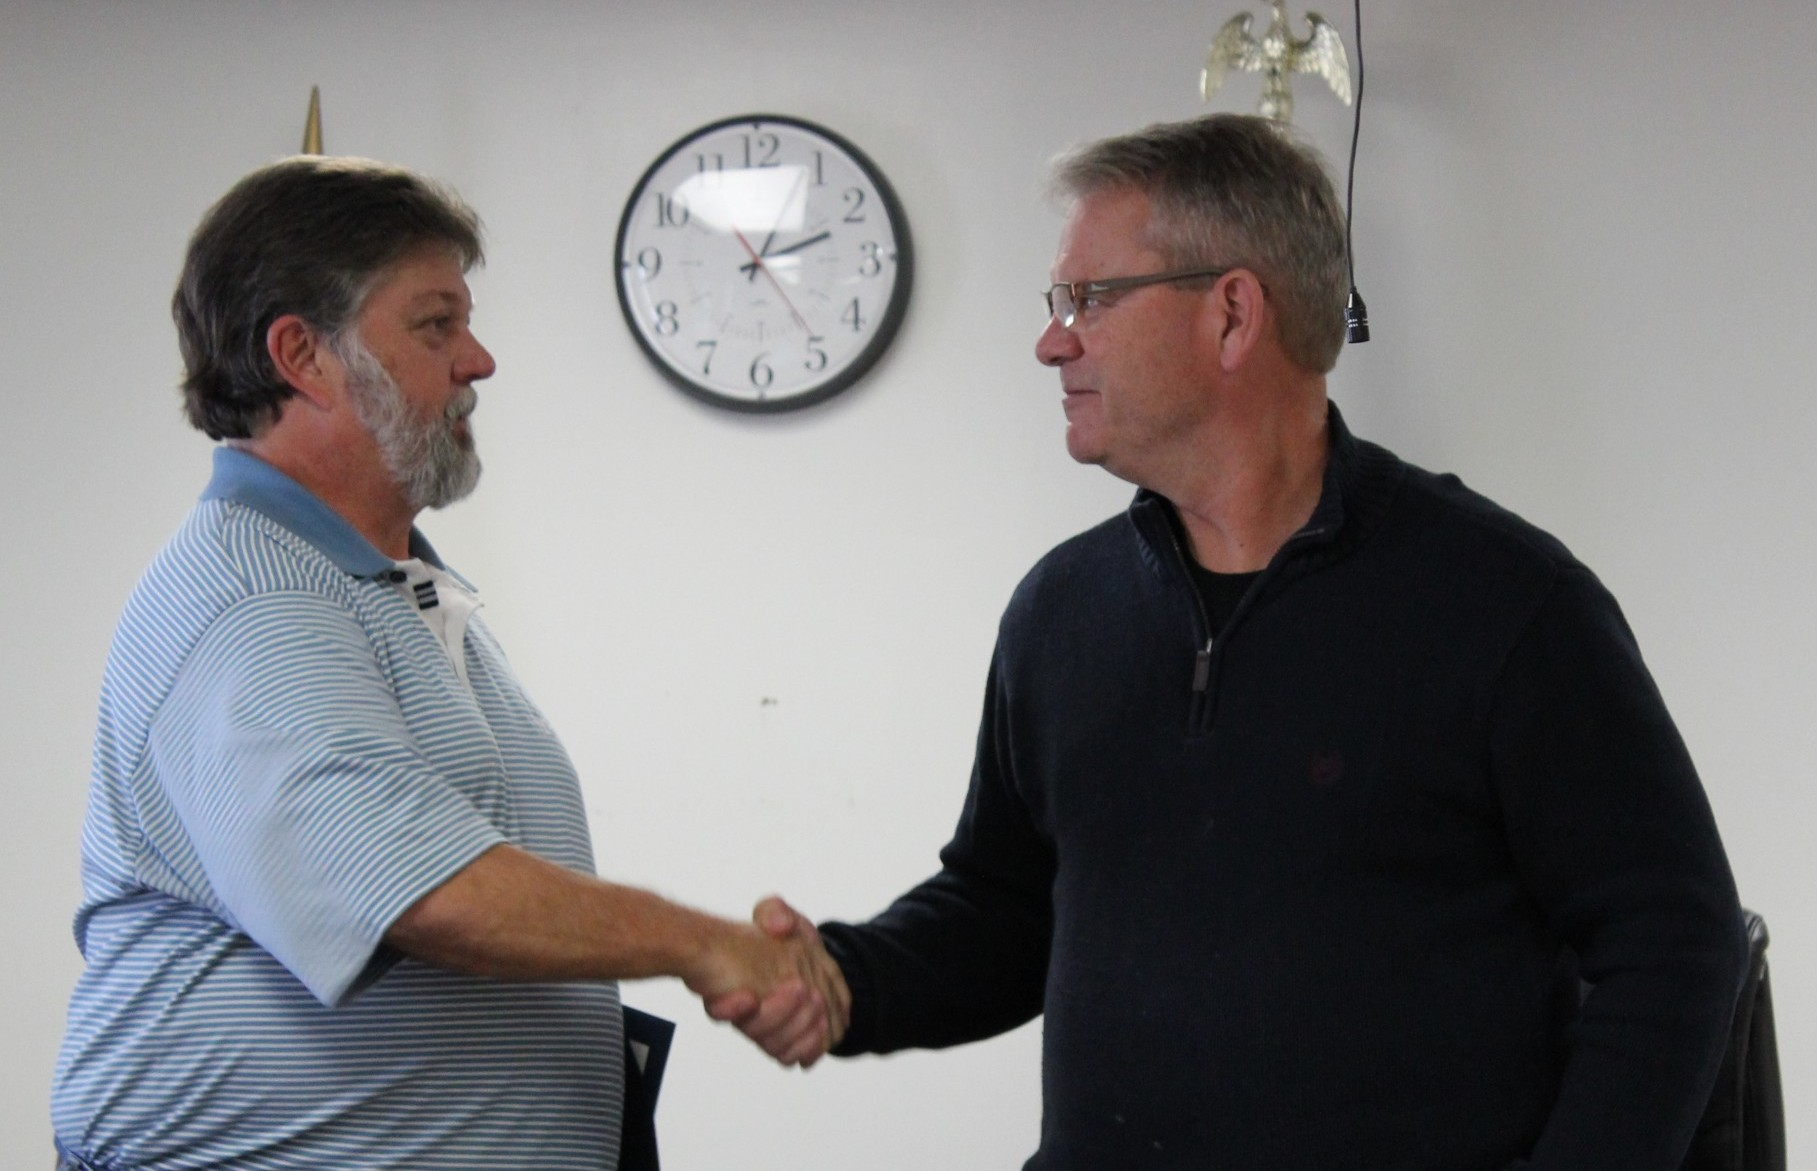 DePoister Congratulated for Service on County Board, Perry Sworn In